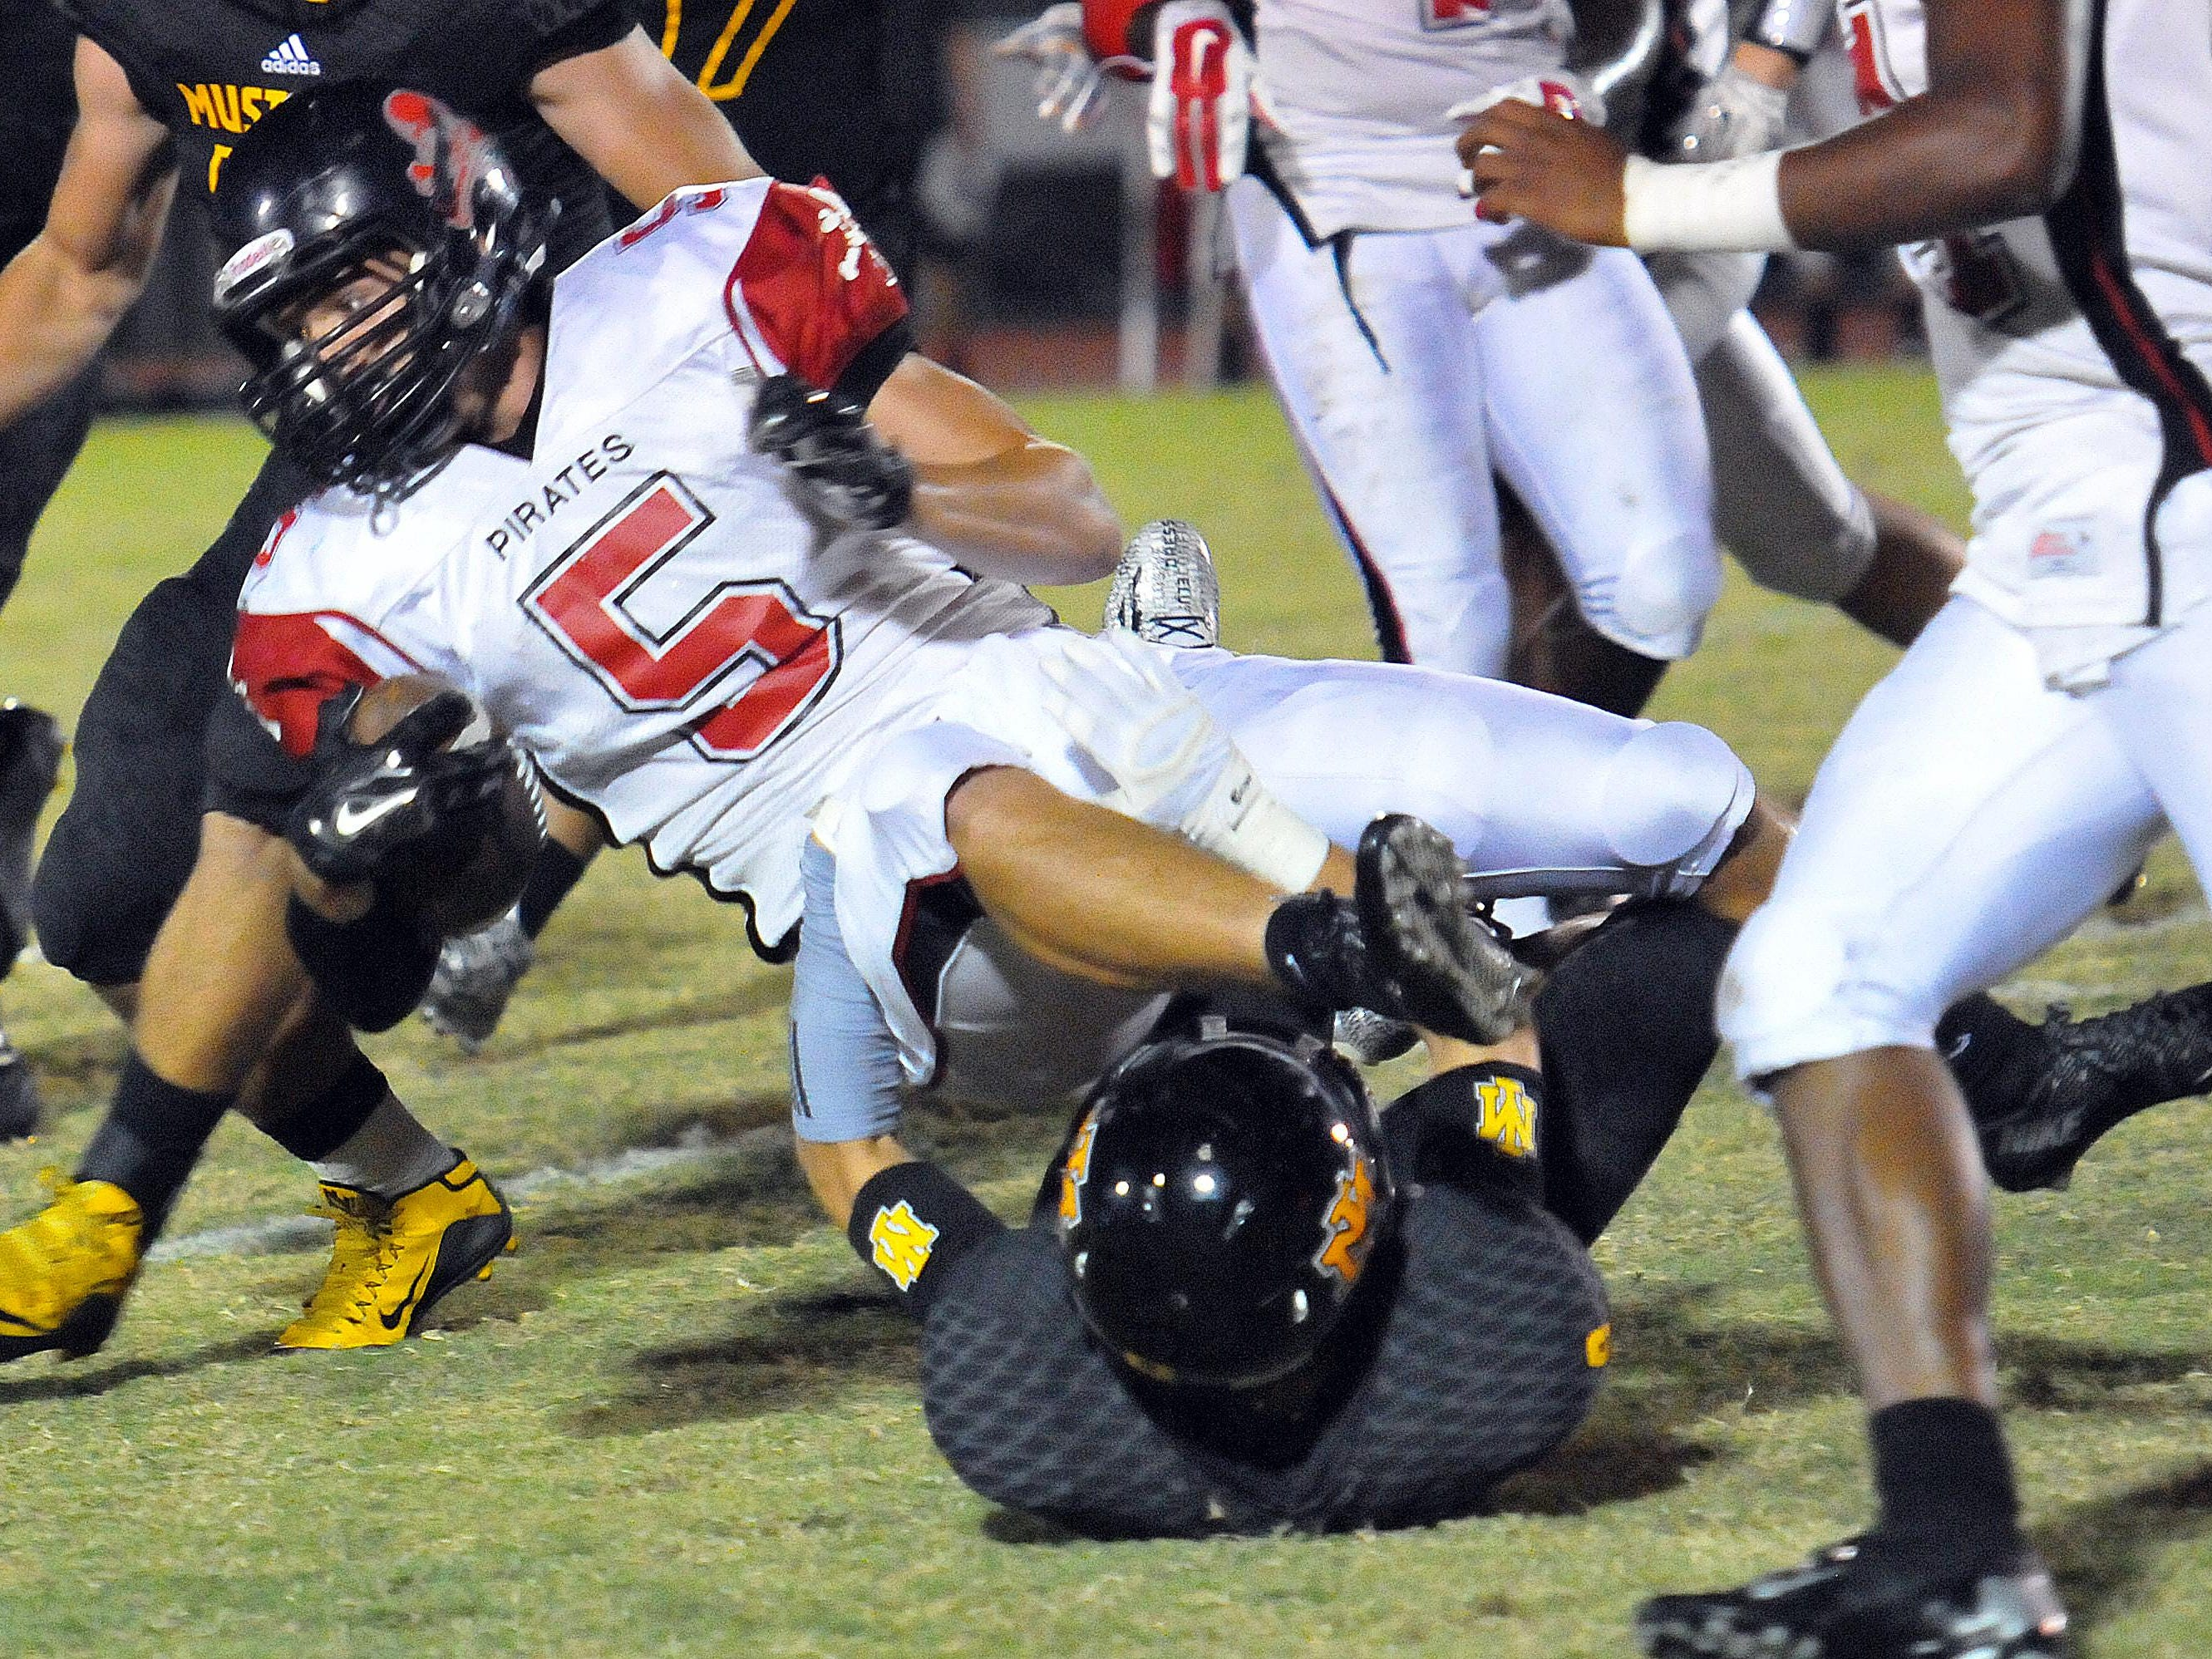 Palm Bay High's Jared Morris dives for extra yards over Merritt Island defenders.